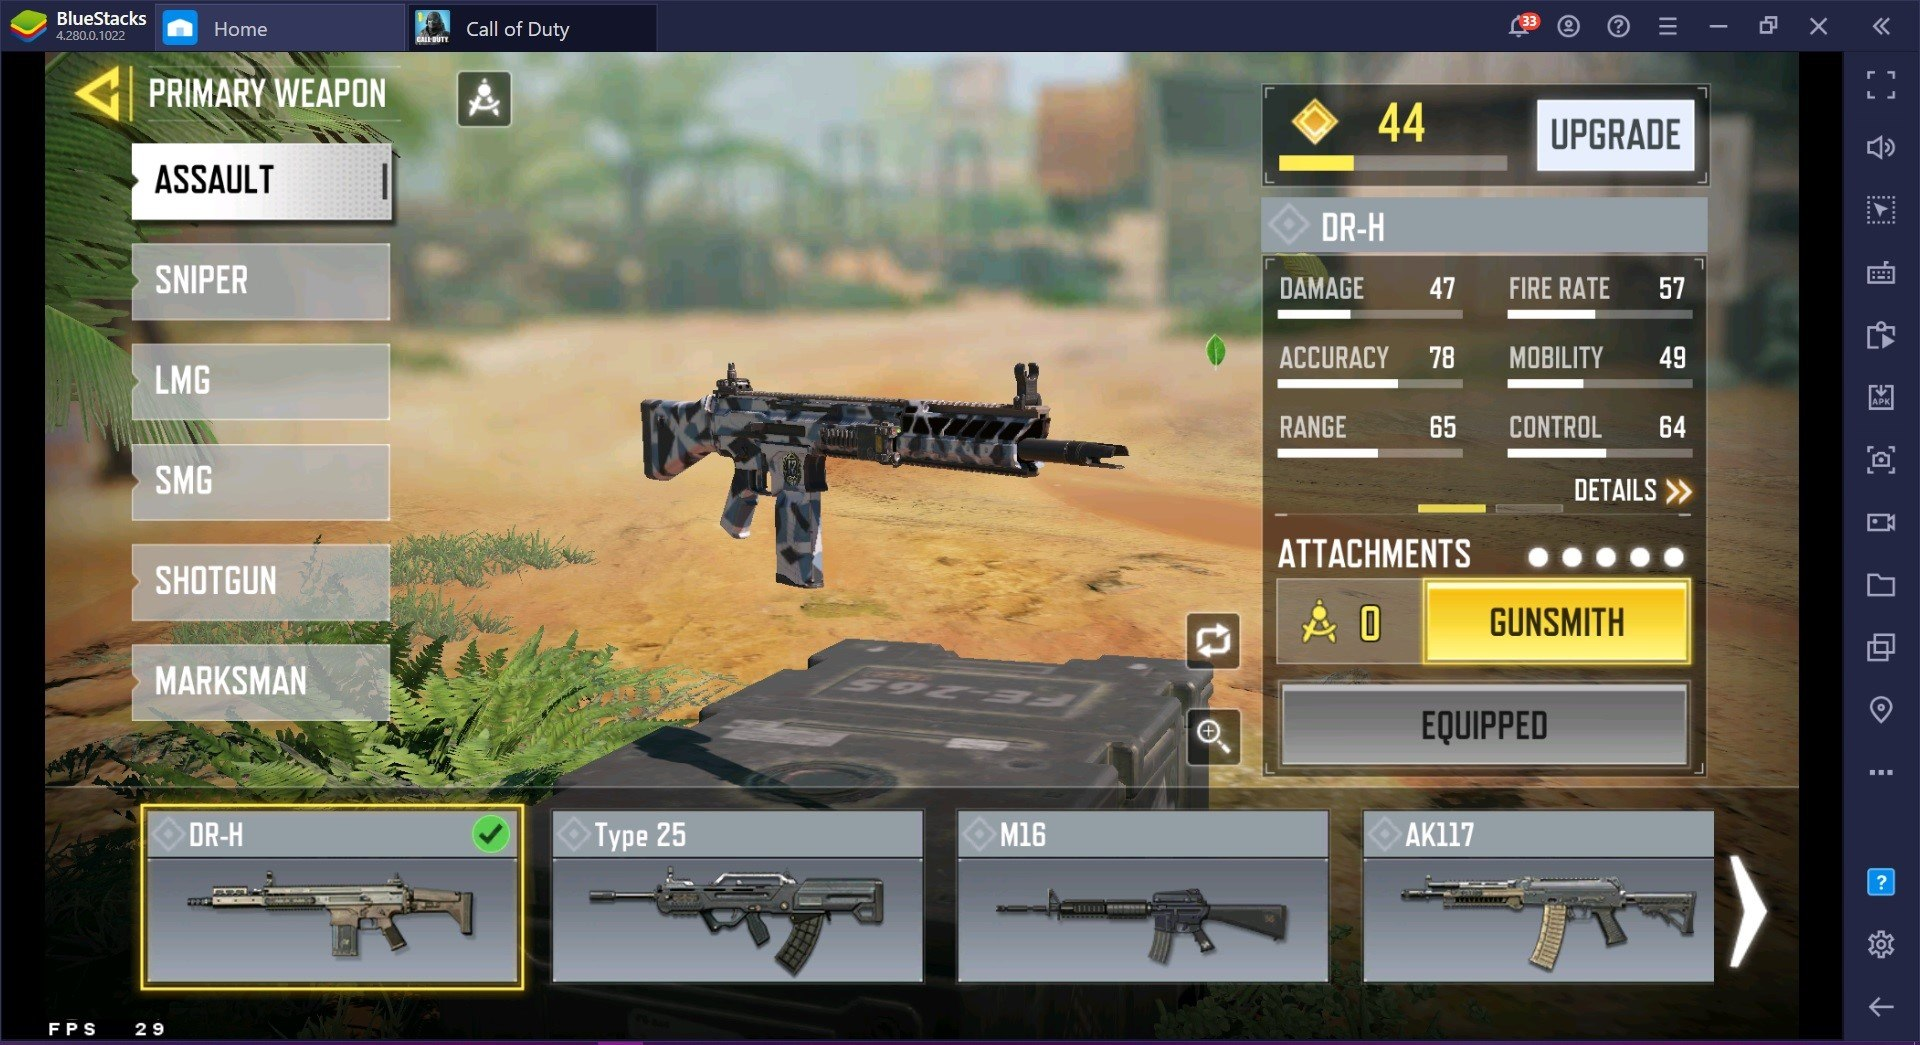 Call of Duty: Mobile Multiplayer Weapon Guide for Season 4 Ranked